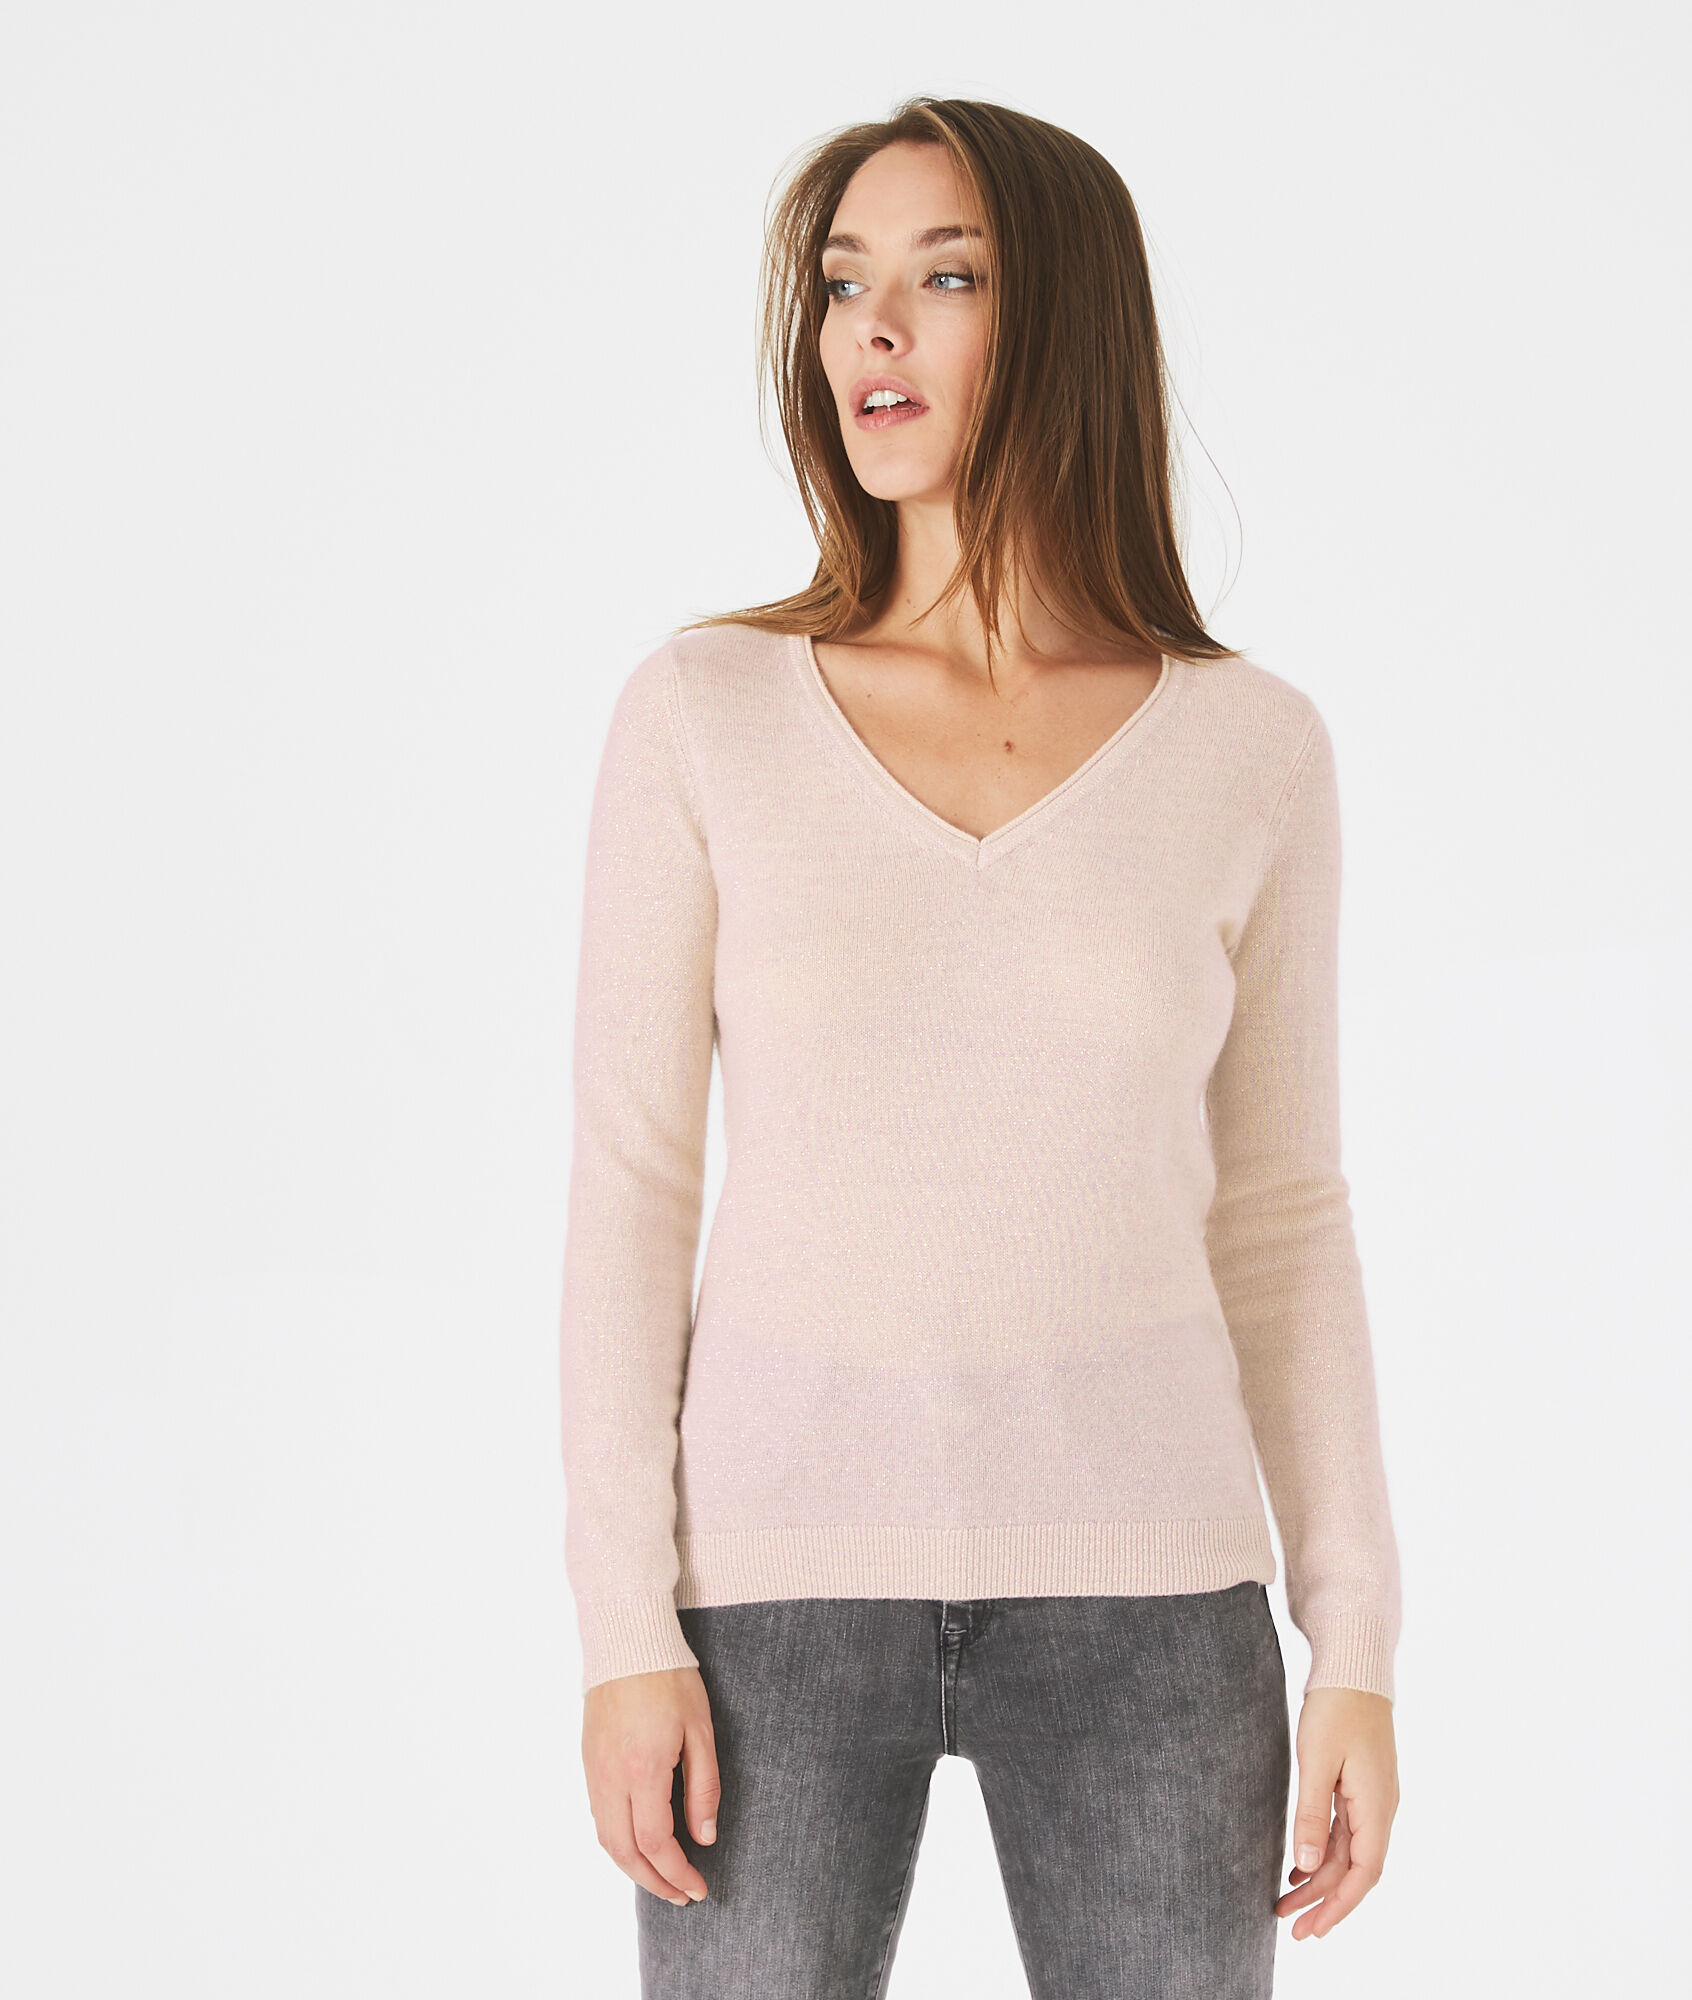 Paquerette powder pink, cashmere sweater with V-neck - 123